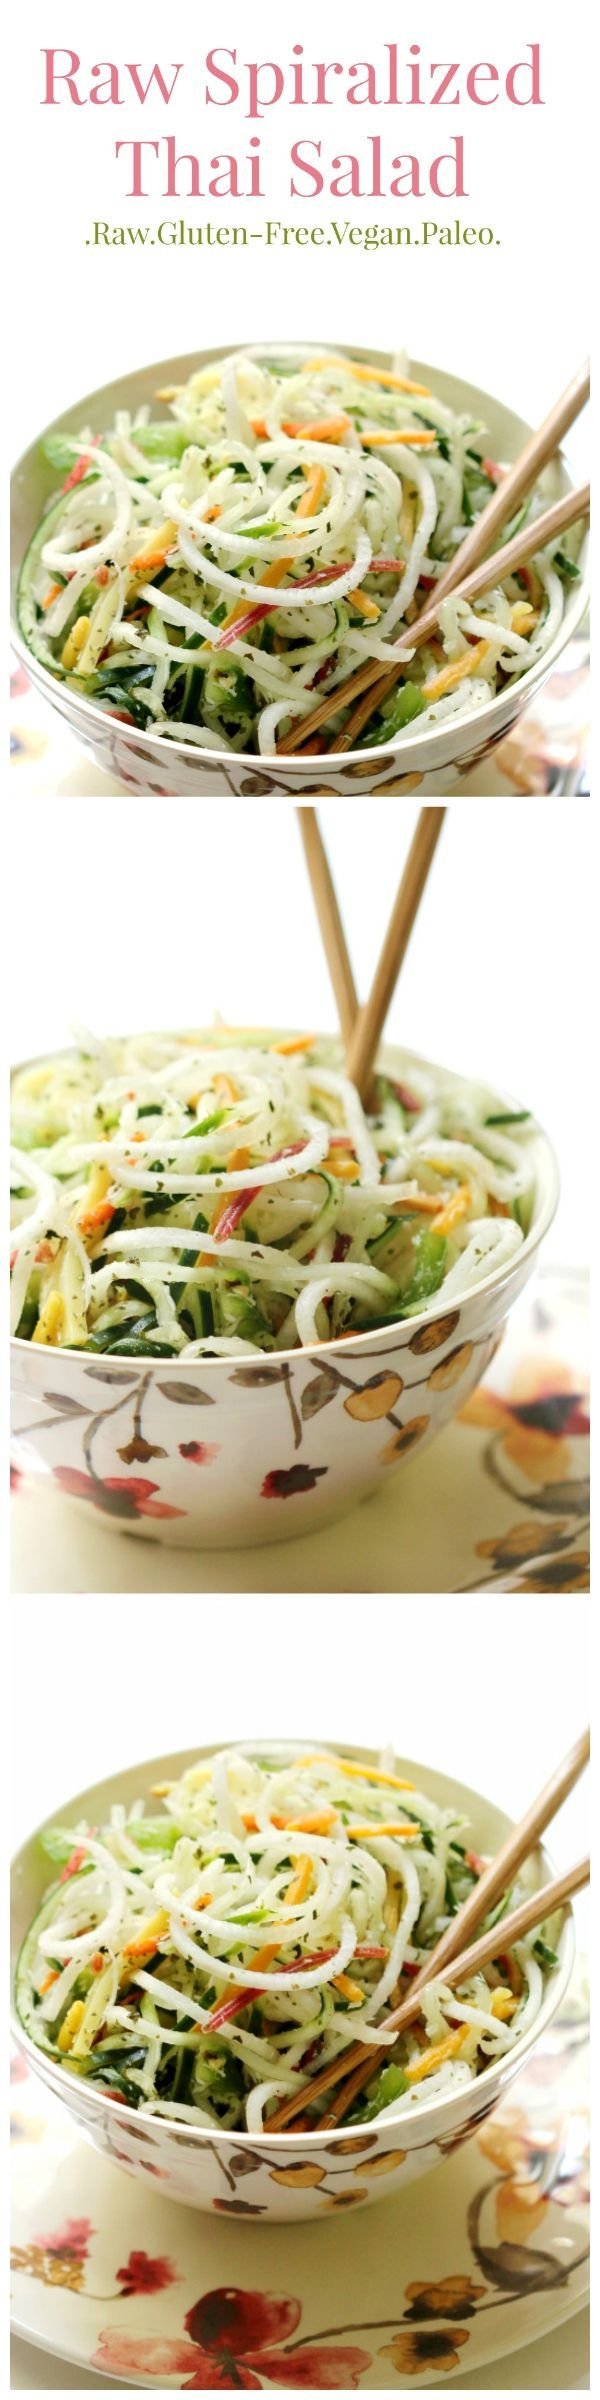 Who ever said veggies were boring? This Spiralized Thai Salad is all veggie, all raw, and exploding with flavor! If you aren't a veggie lover yet, you will be after tasting this gluten-free, paleo, and vegan spiralized salad recipe!